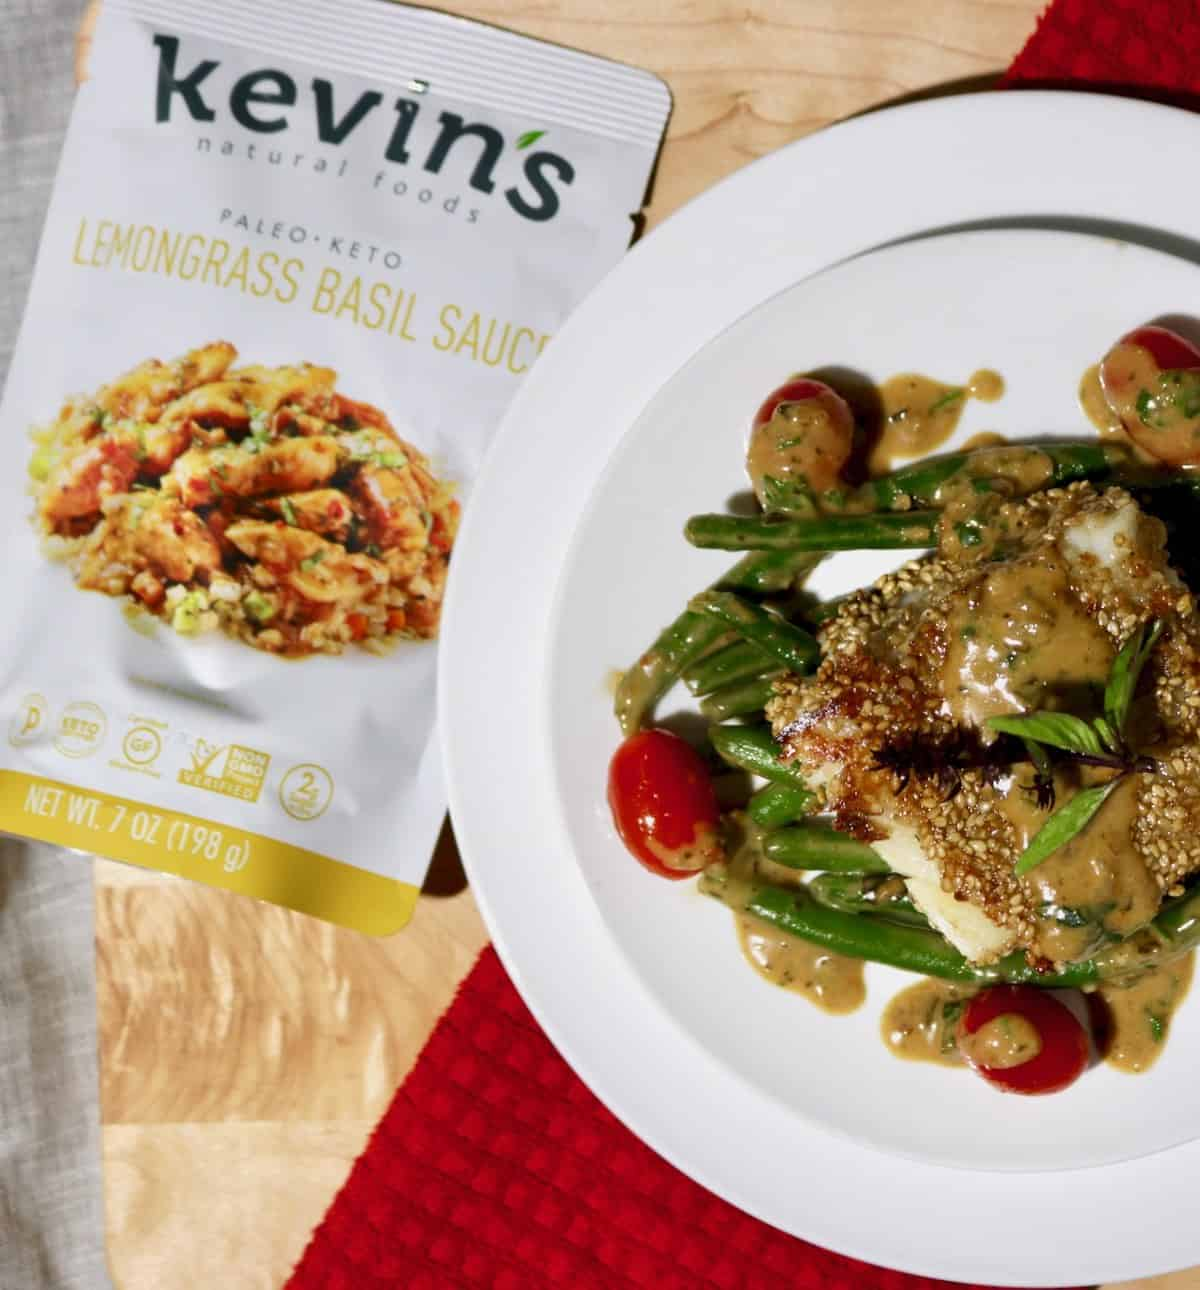 plate of sesame crusted cod green beans and tomatoes with lemongrass basil sauce product package